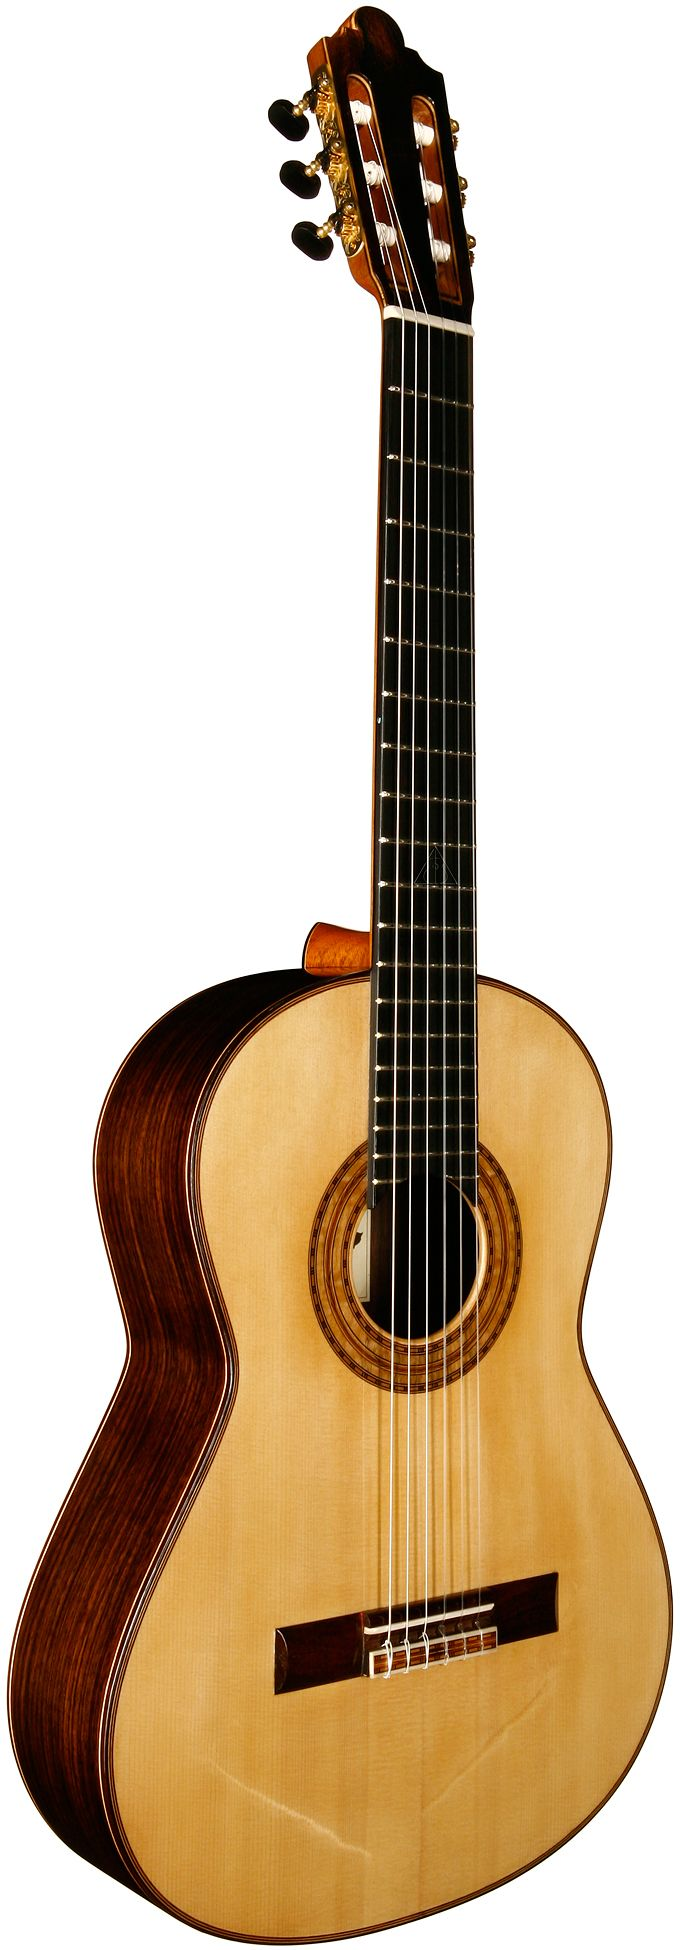 2012 Steve Porter concert classical guitar. Spruce Top and Indian Rosewood back and sides.